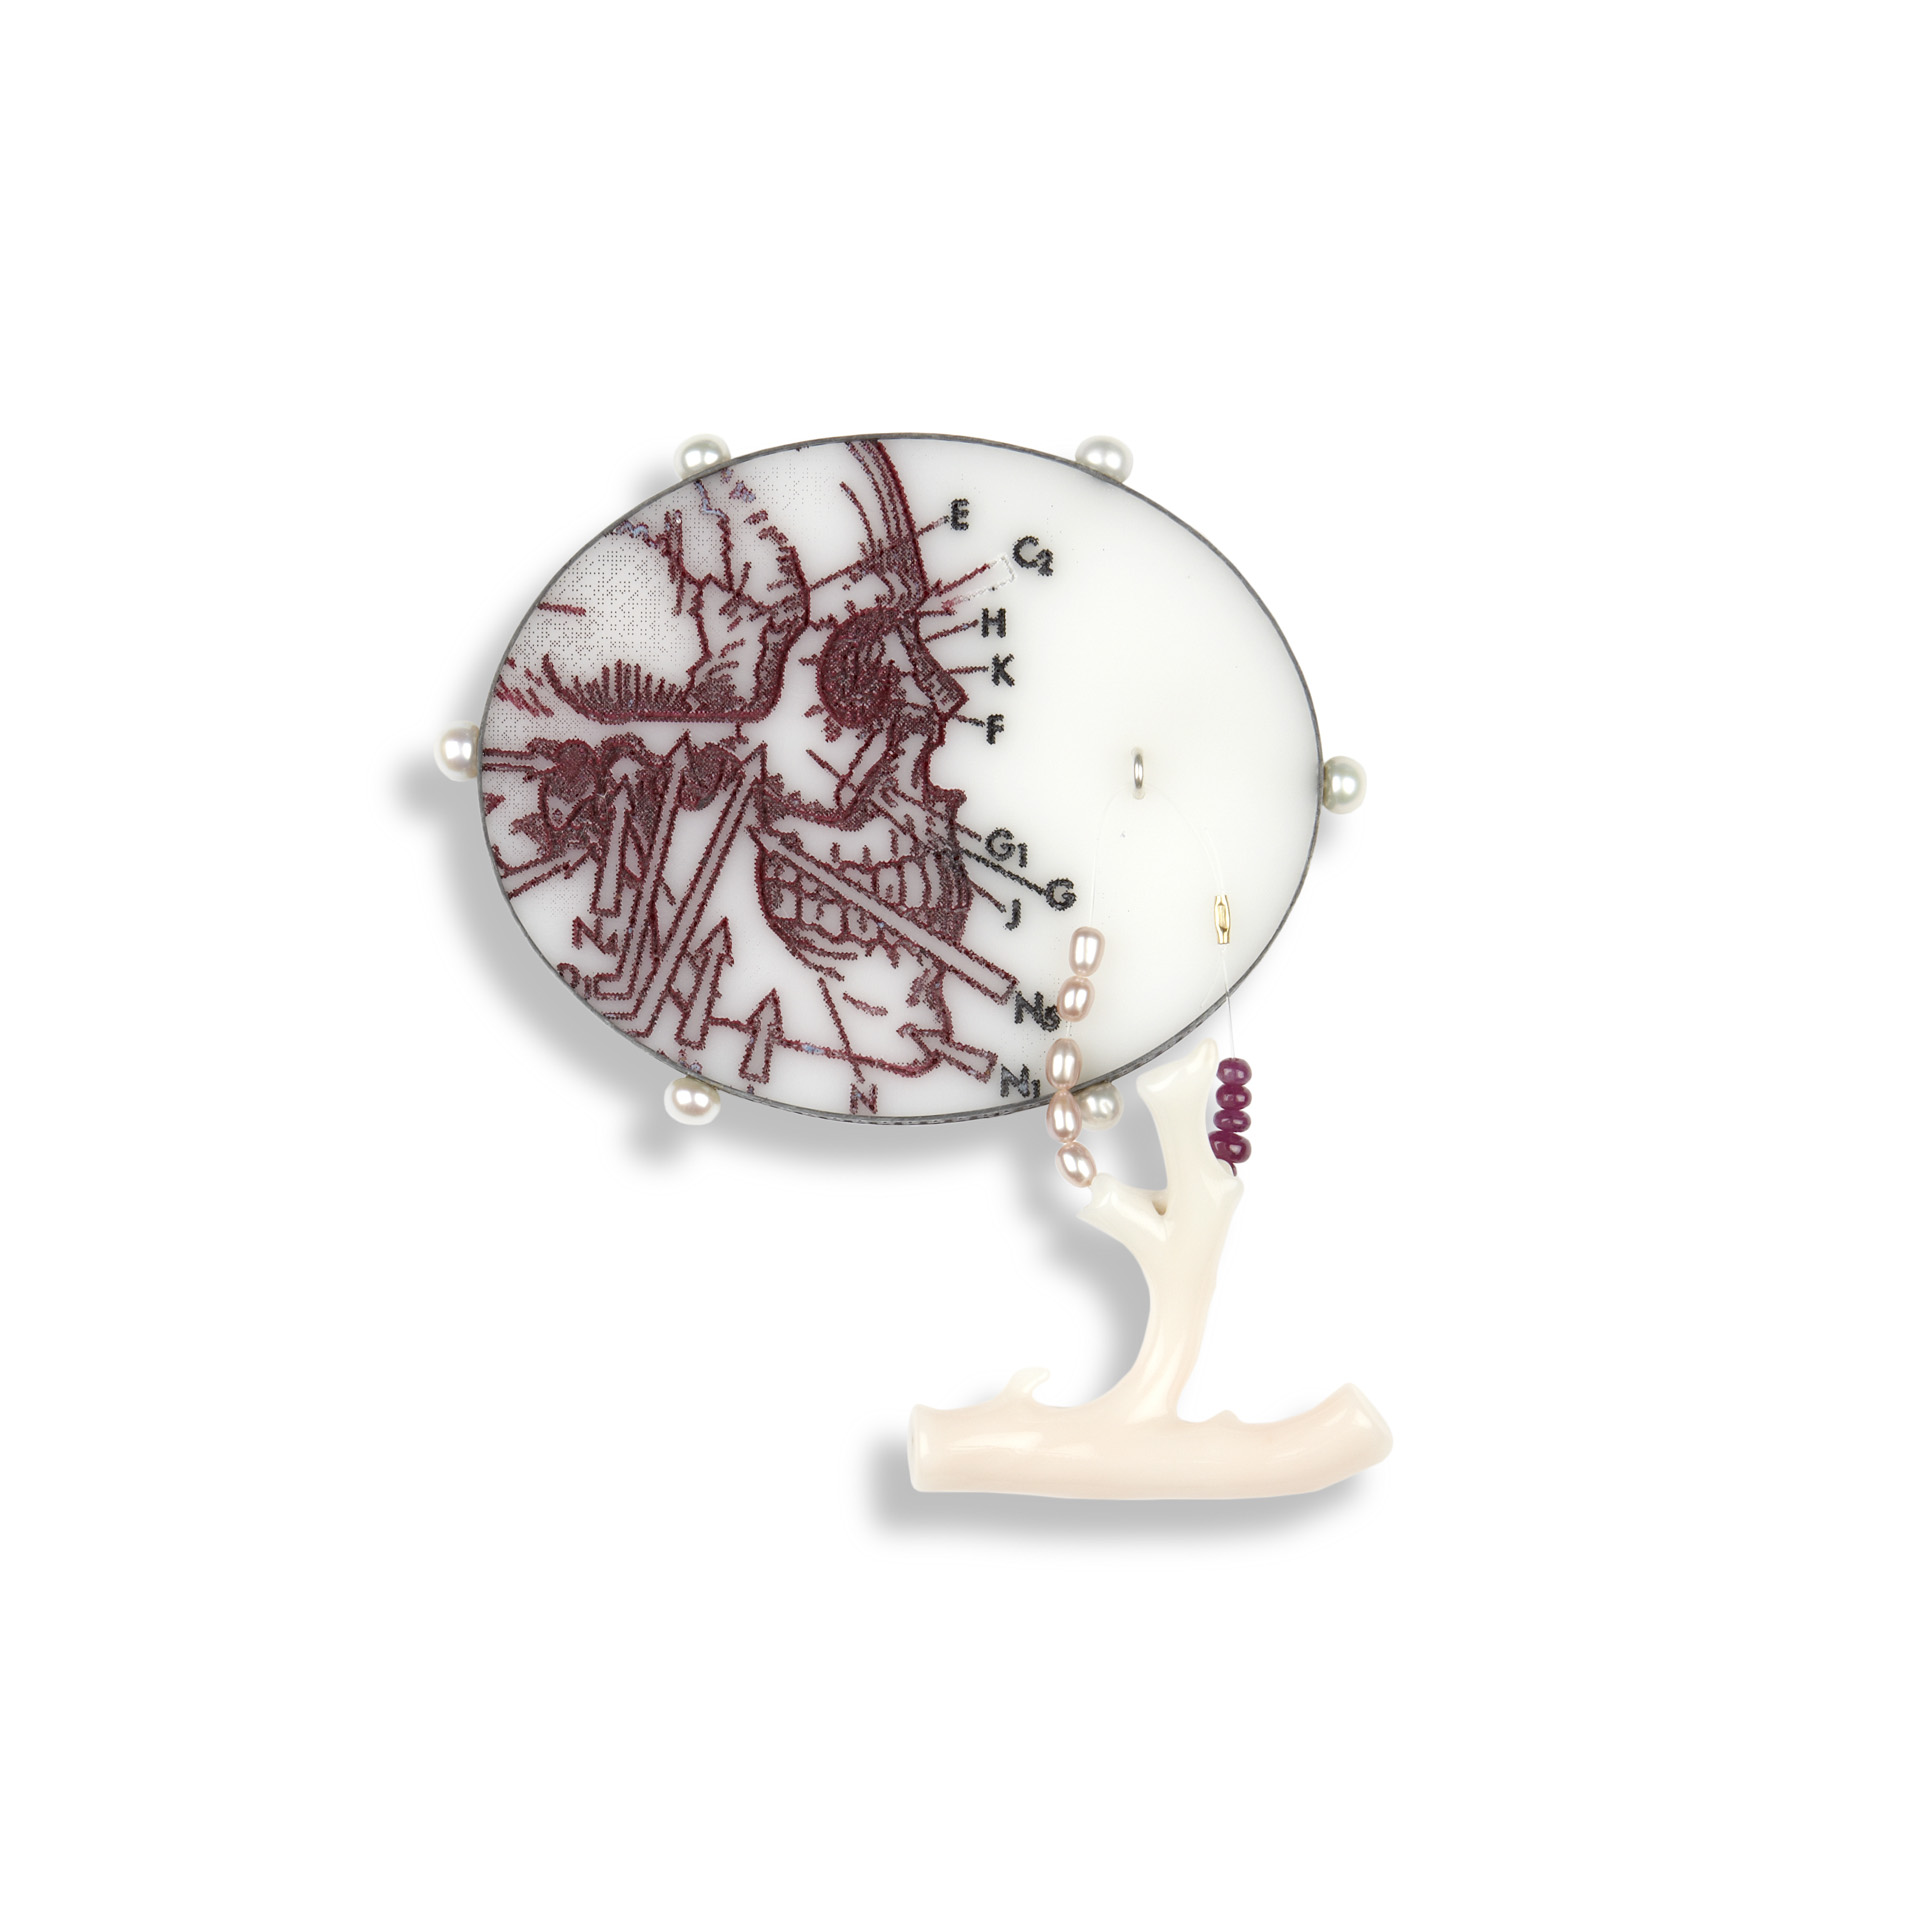 'Fragments & Curiosities' 2011. Brooch; Oxidised silver, Perspex, cultured pearl, 18ct Y gold detail, branch coral, ruby